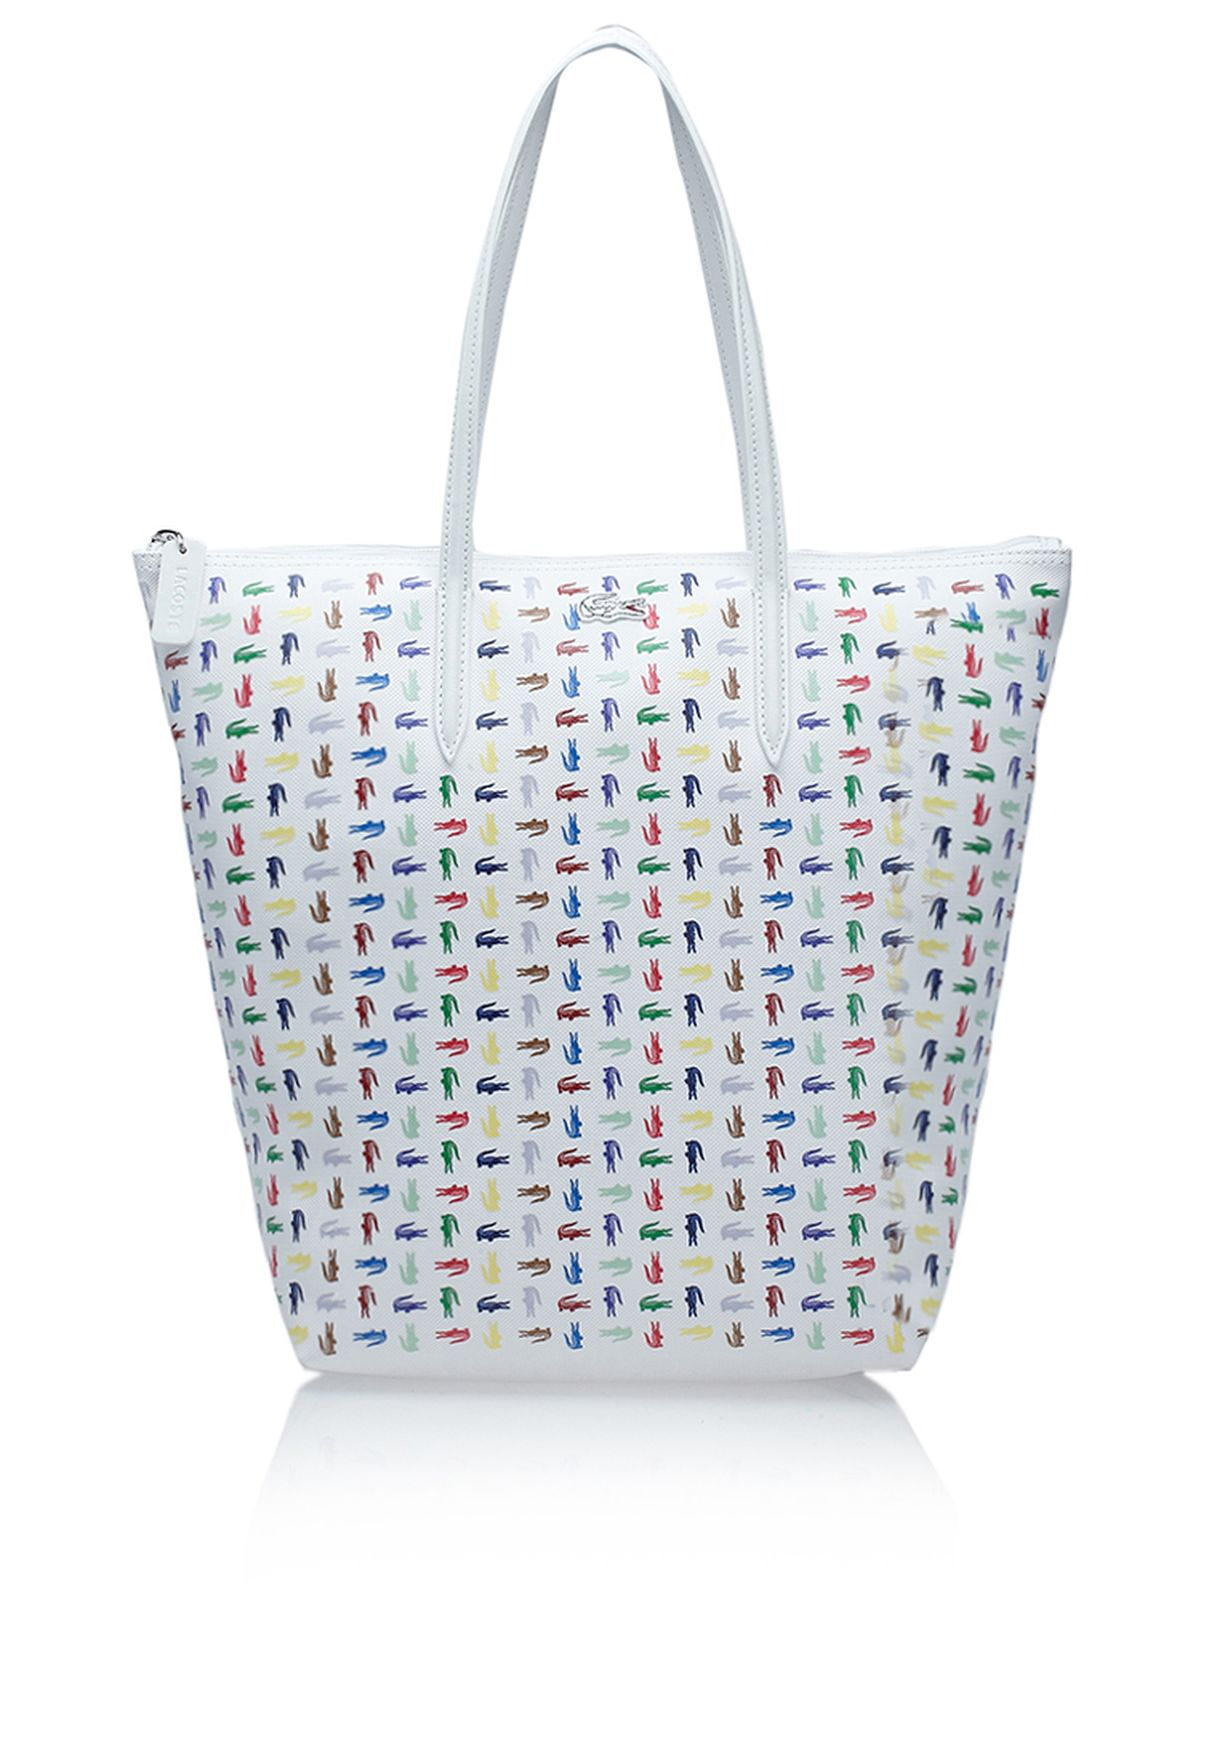 37da288469 Shop Lacoste white Vertical Tote Bag NF1025CX-552 for Women in Saudi -  LA014AC15RKE